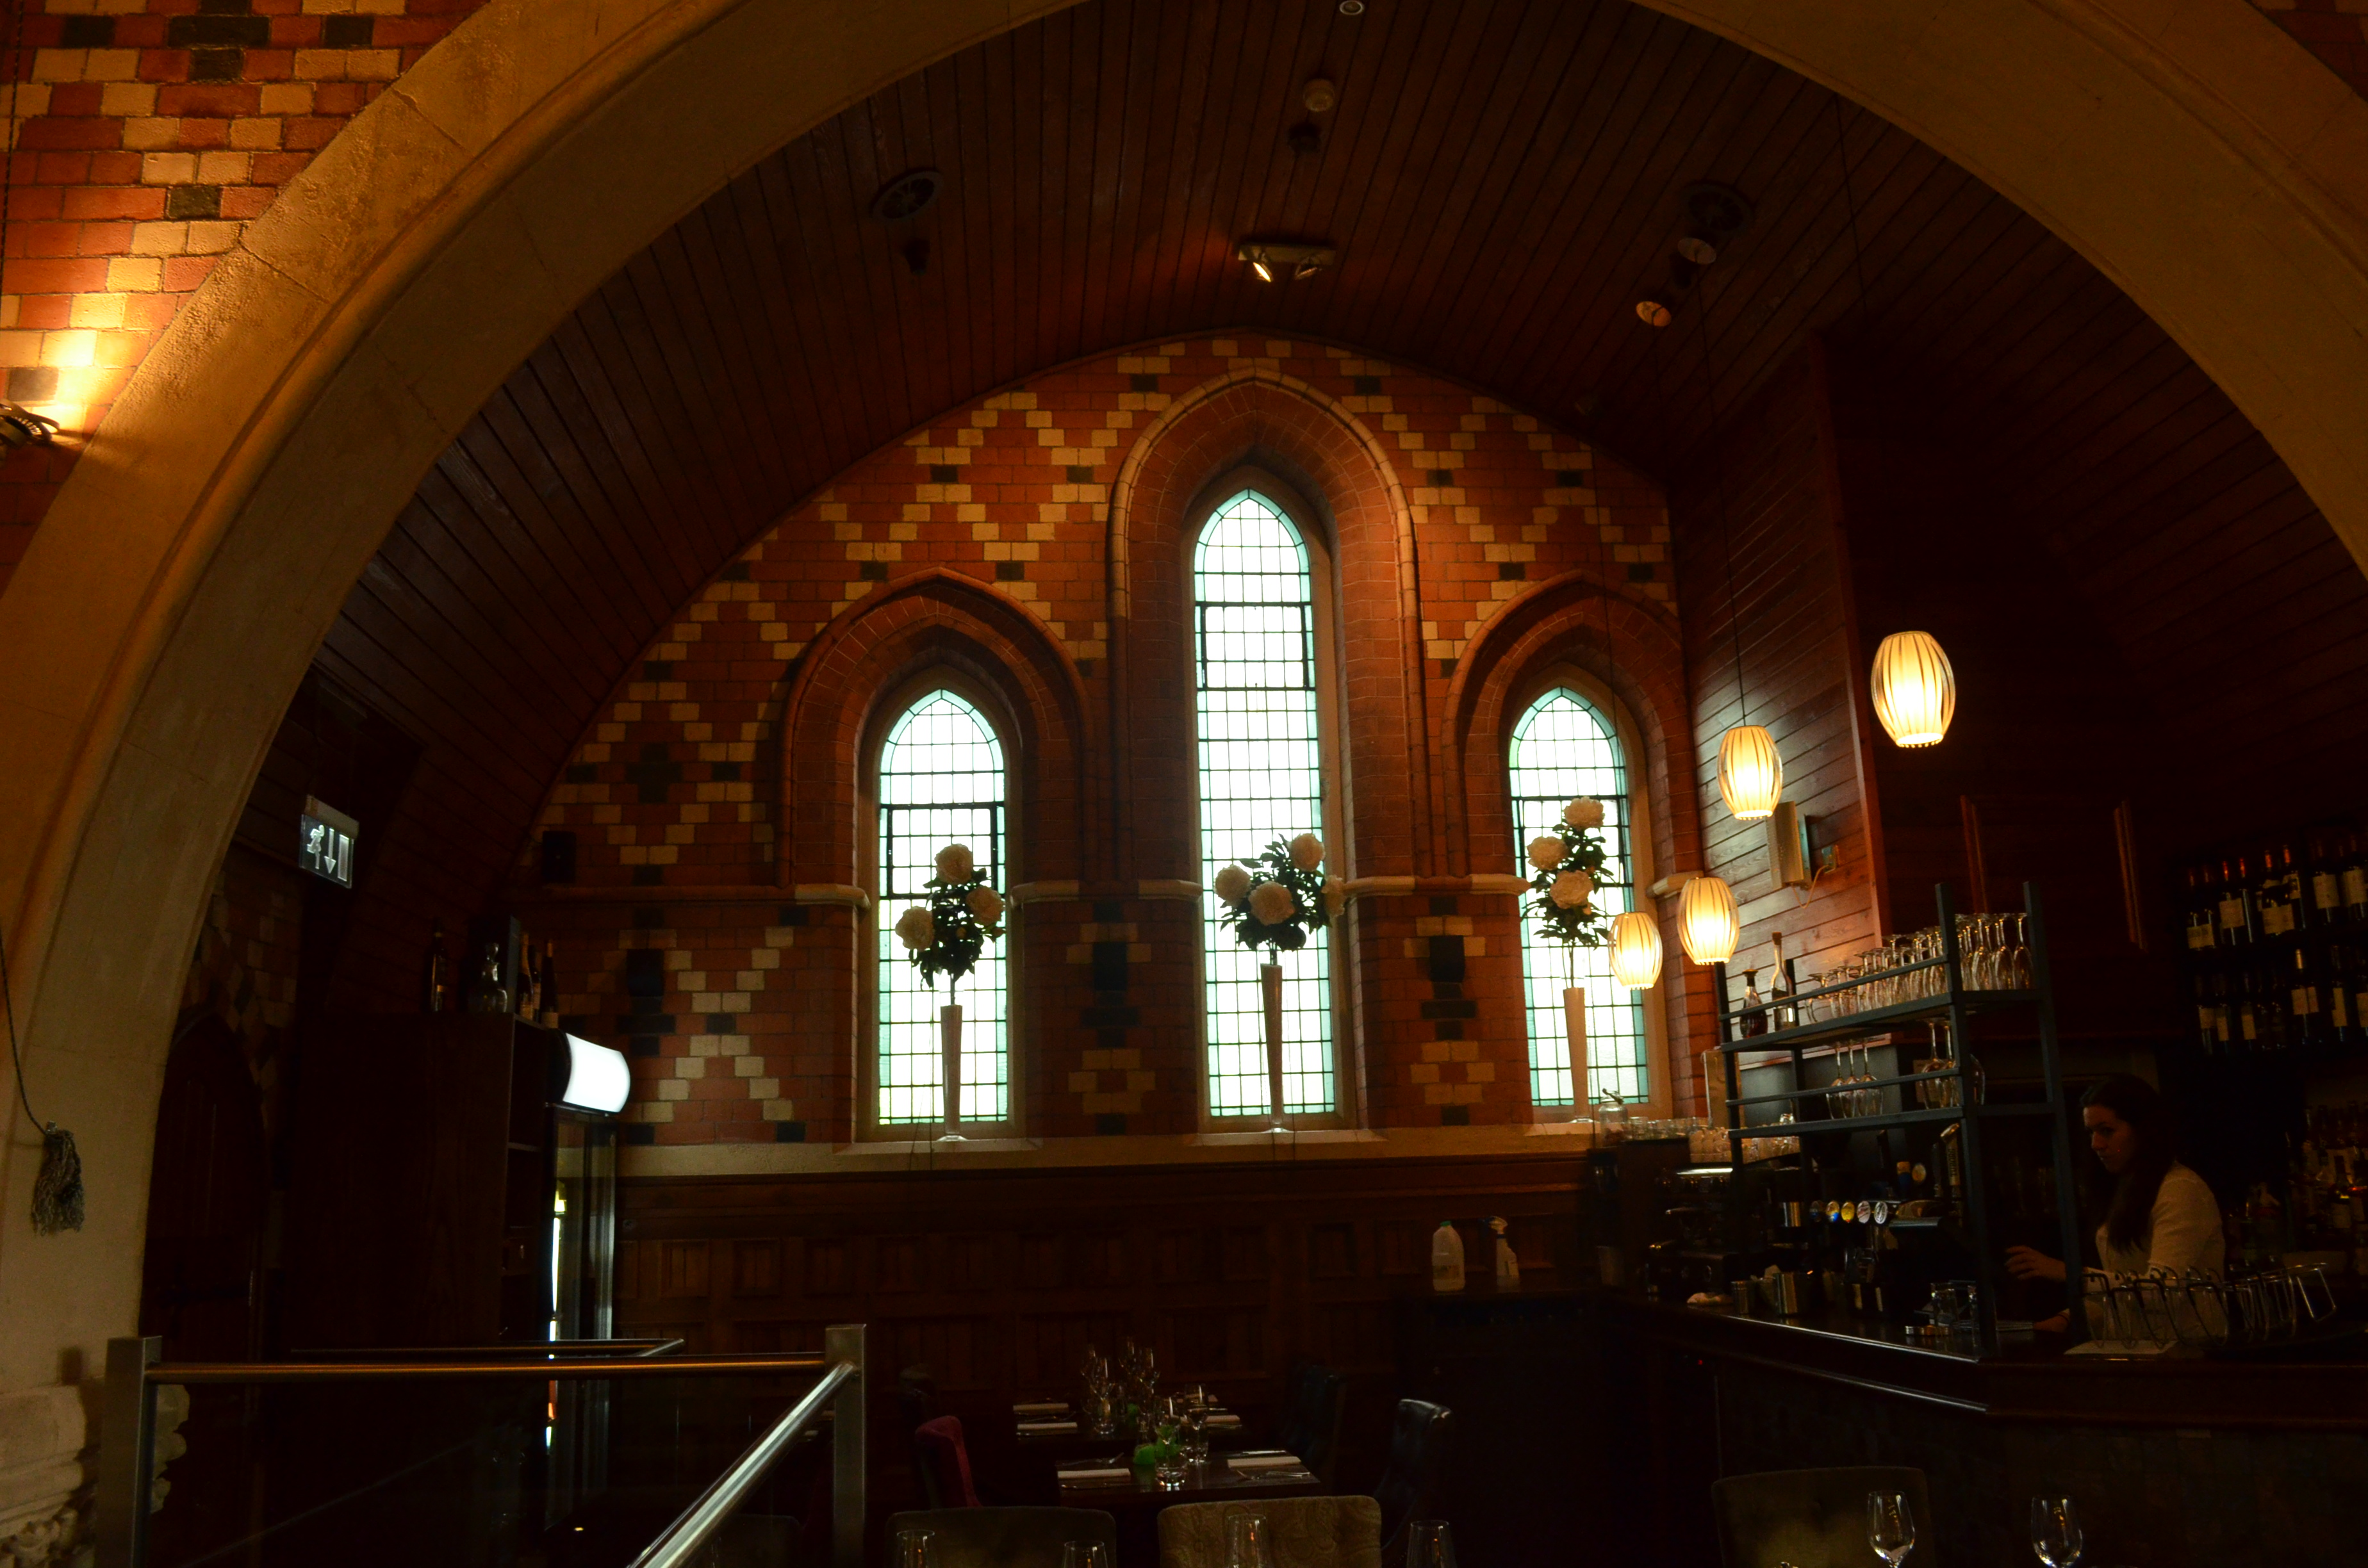 Chapel 1877 Built In High Victorian Gothic Architecture